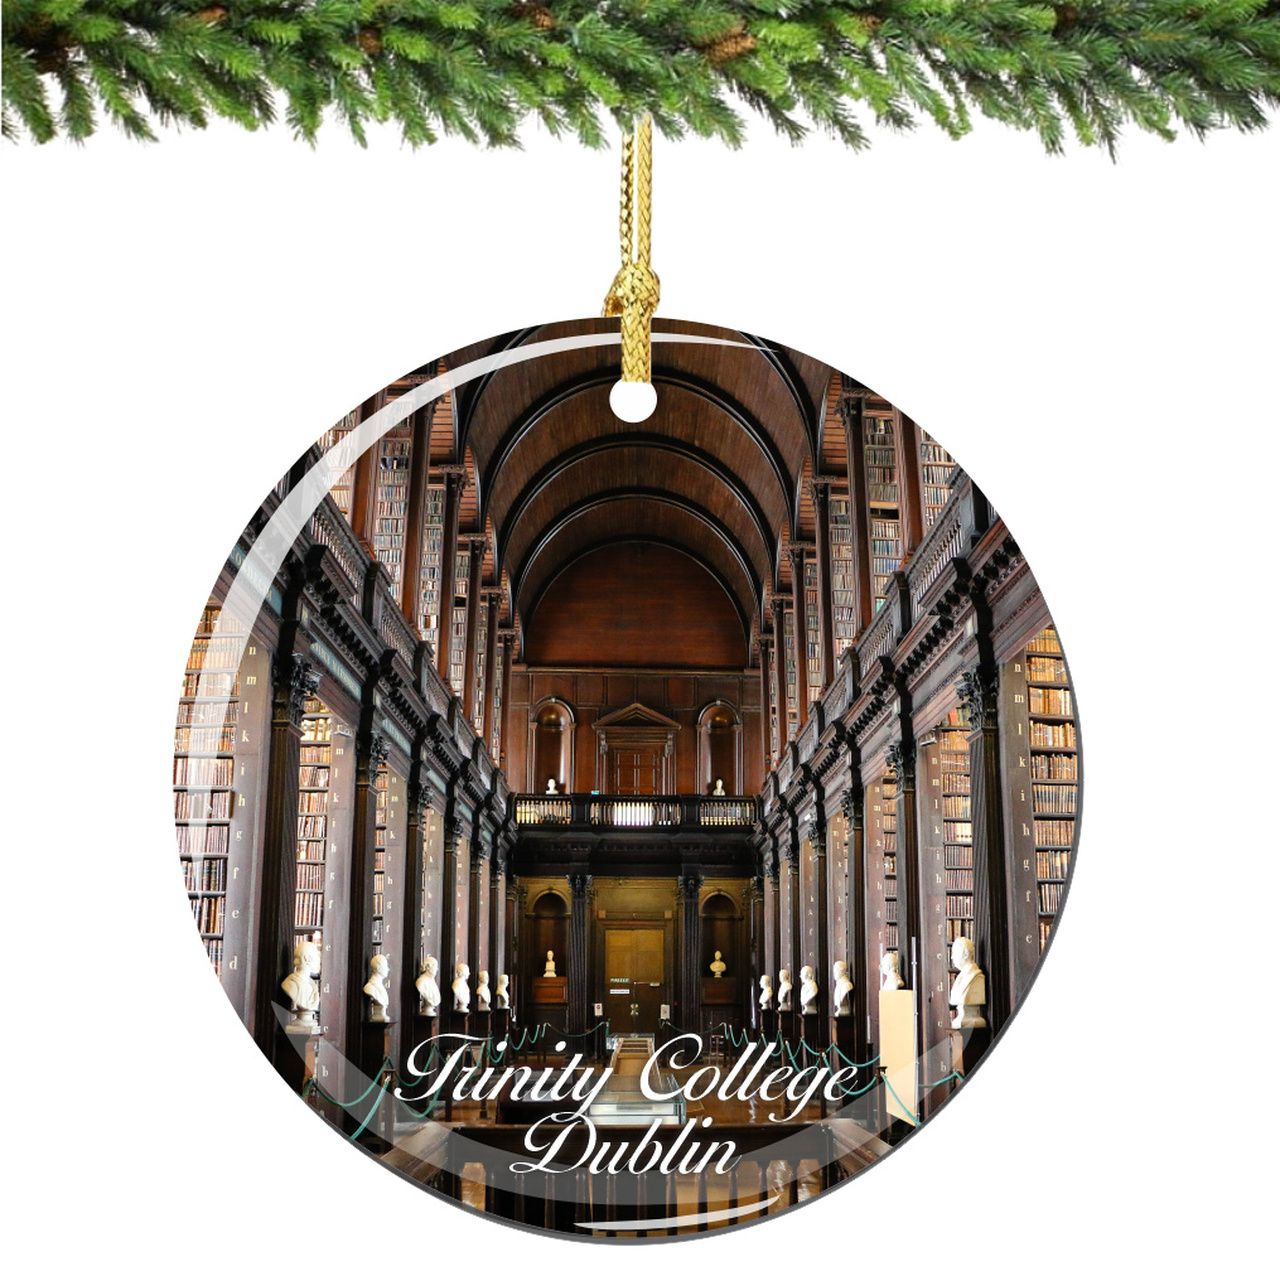 Trinity College Library Dublin Christmas Ornament